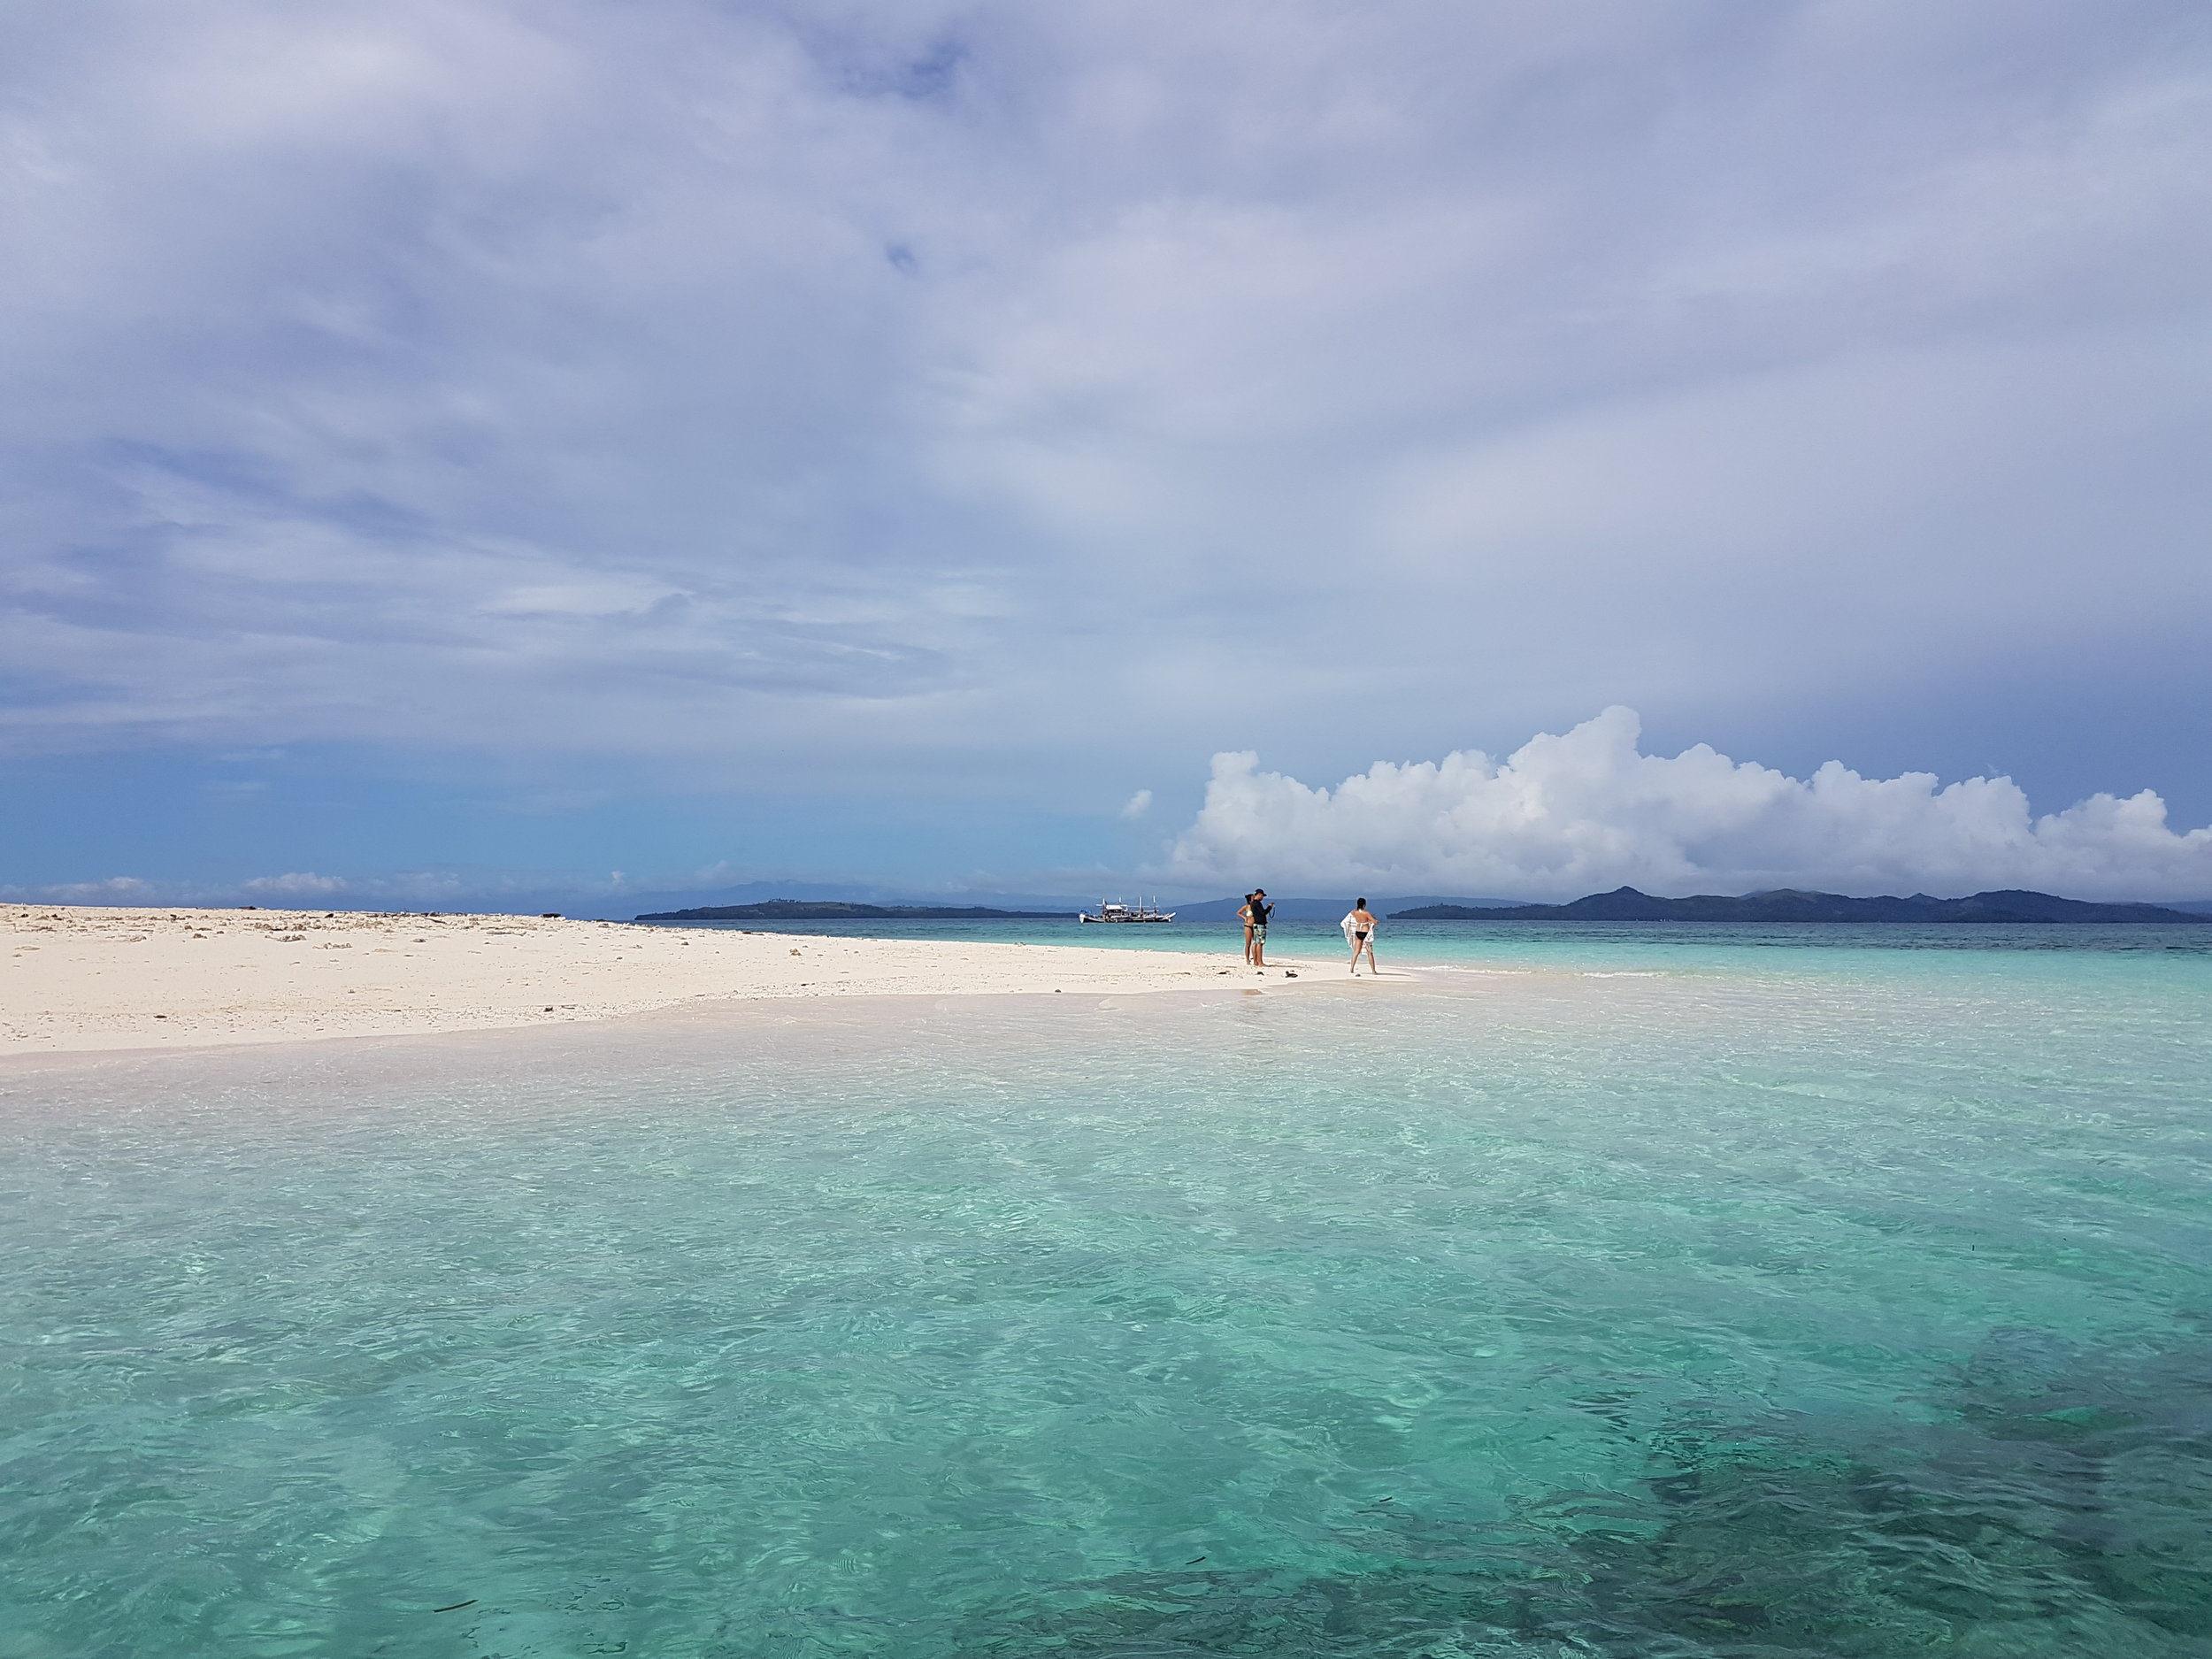 The sandy side of Naked Island is perfect for bumming and getting that glorious tan.